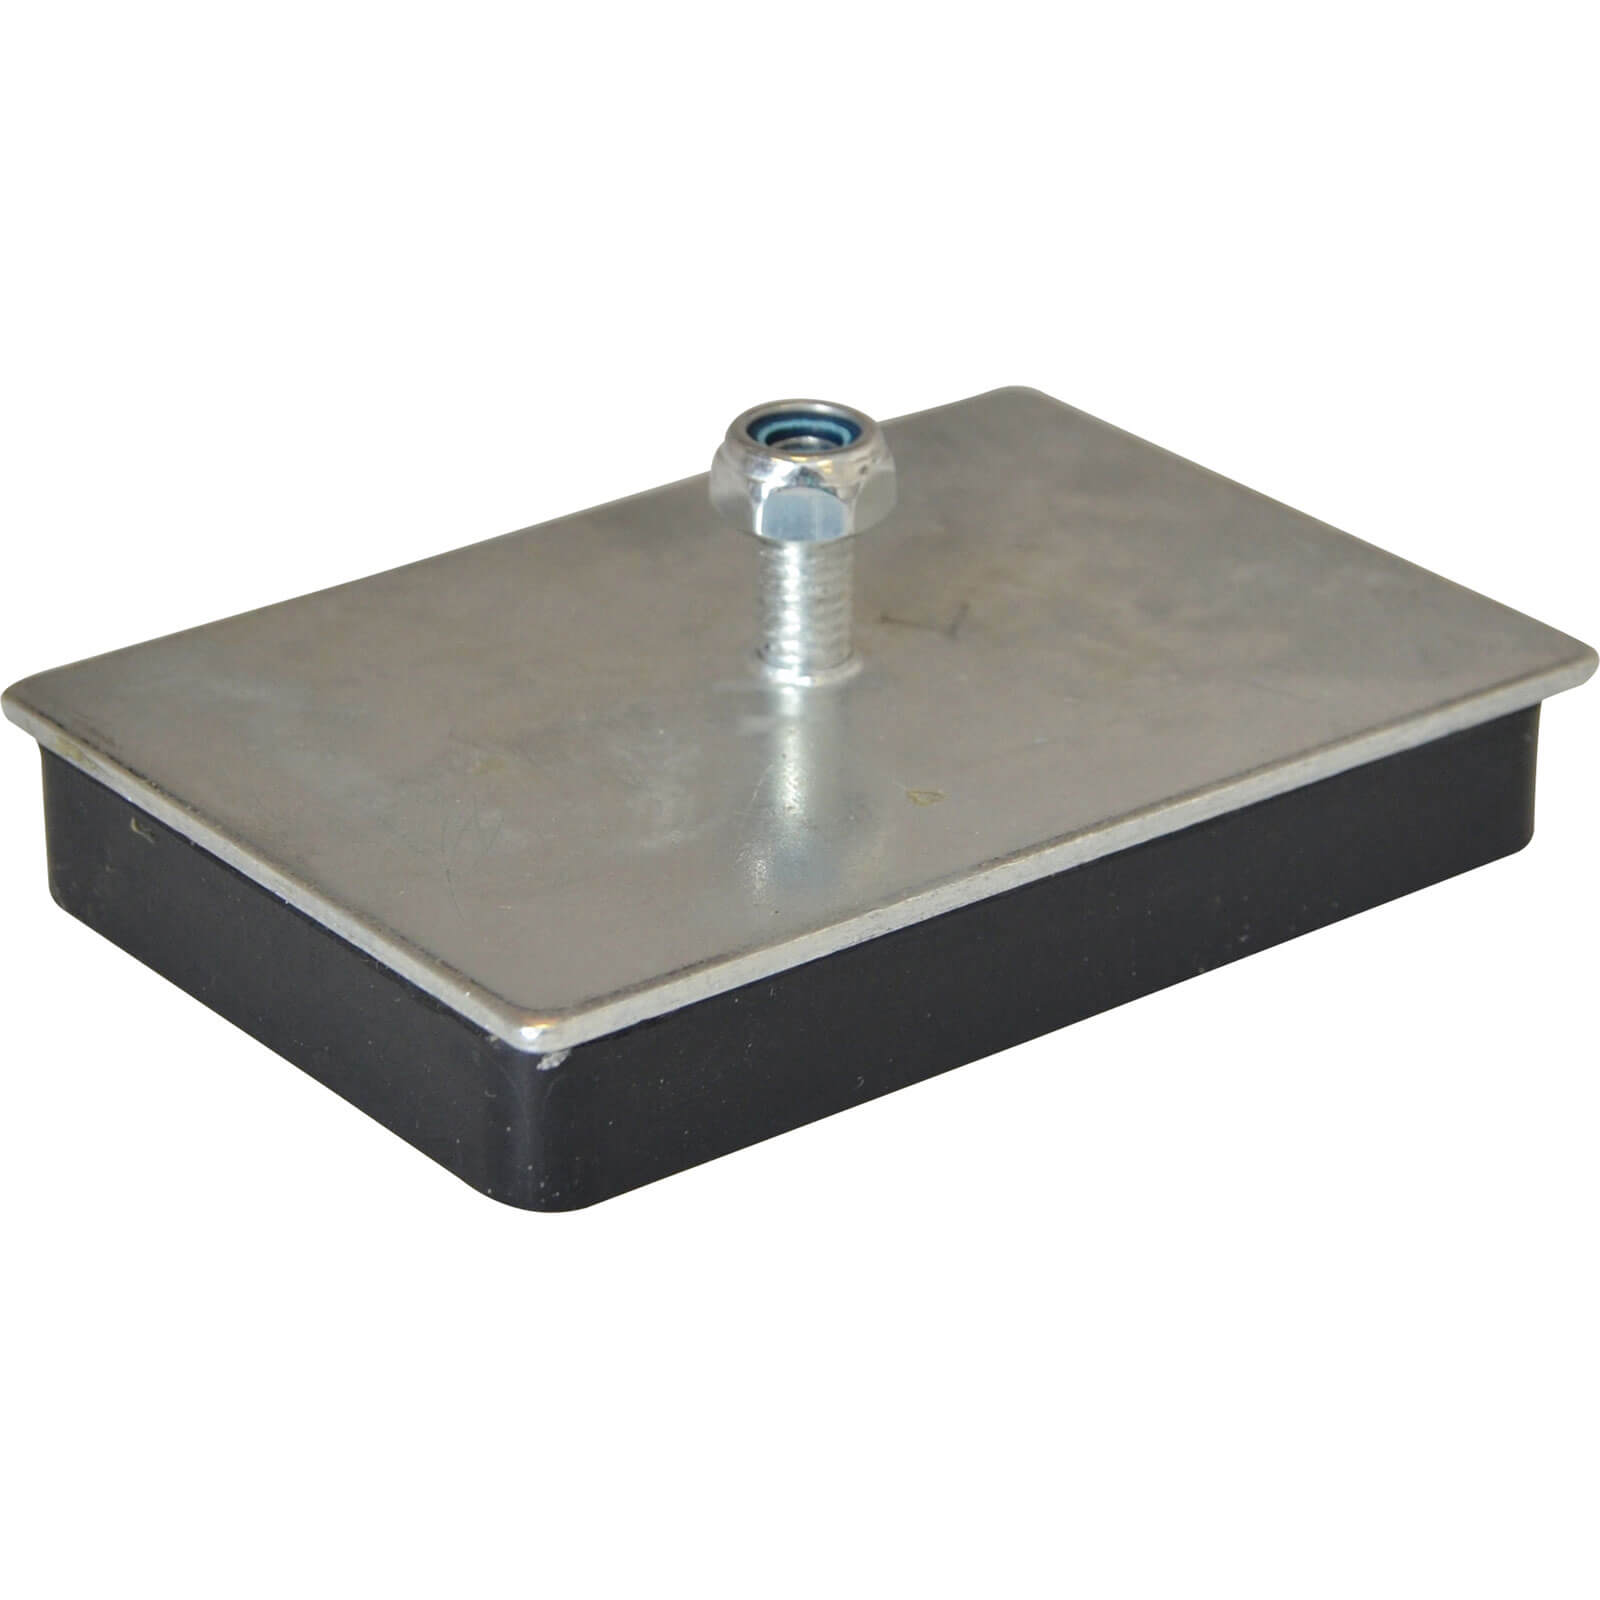 Image of E Magnet 622 Magnetic Mounting Pad